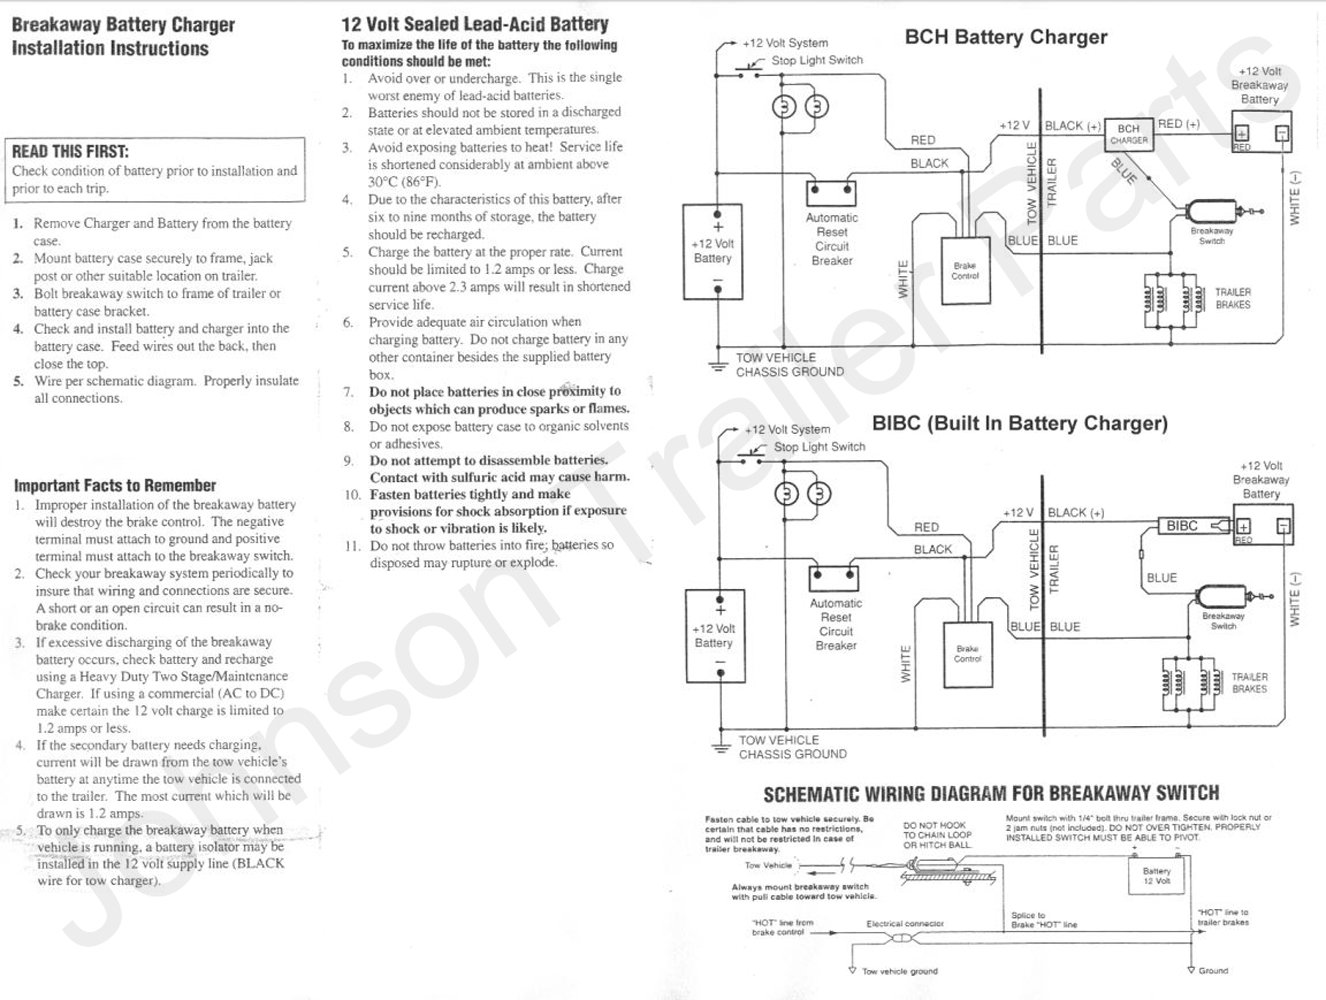 718PvzZr5ZL._SL1326_ amazon com trailer breakaway kit led readout breakaway switch tekonsha breakaway system wiring diagram at sewacar.co